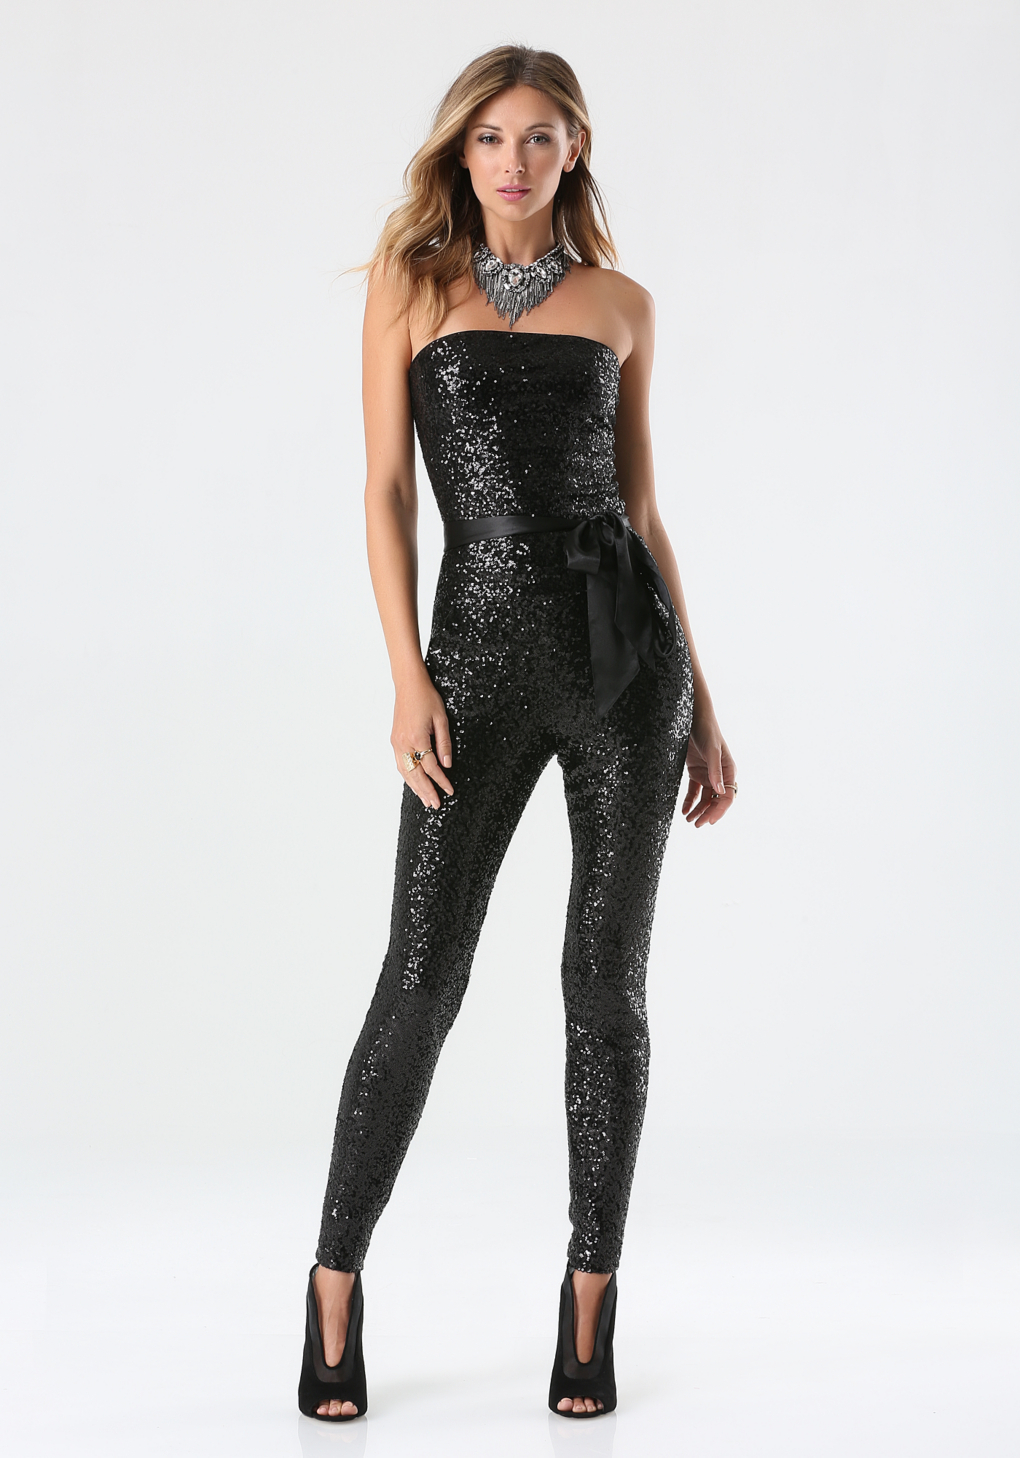 Available In Black Mesh Sequin Jumpsuit Mock Neck With Choker Deep V- Neck Lined With Black Shorts % Polyester.